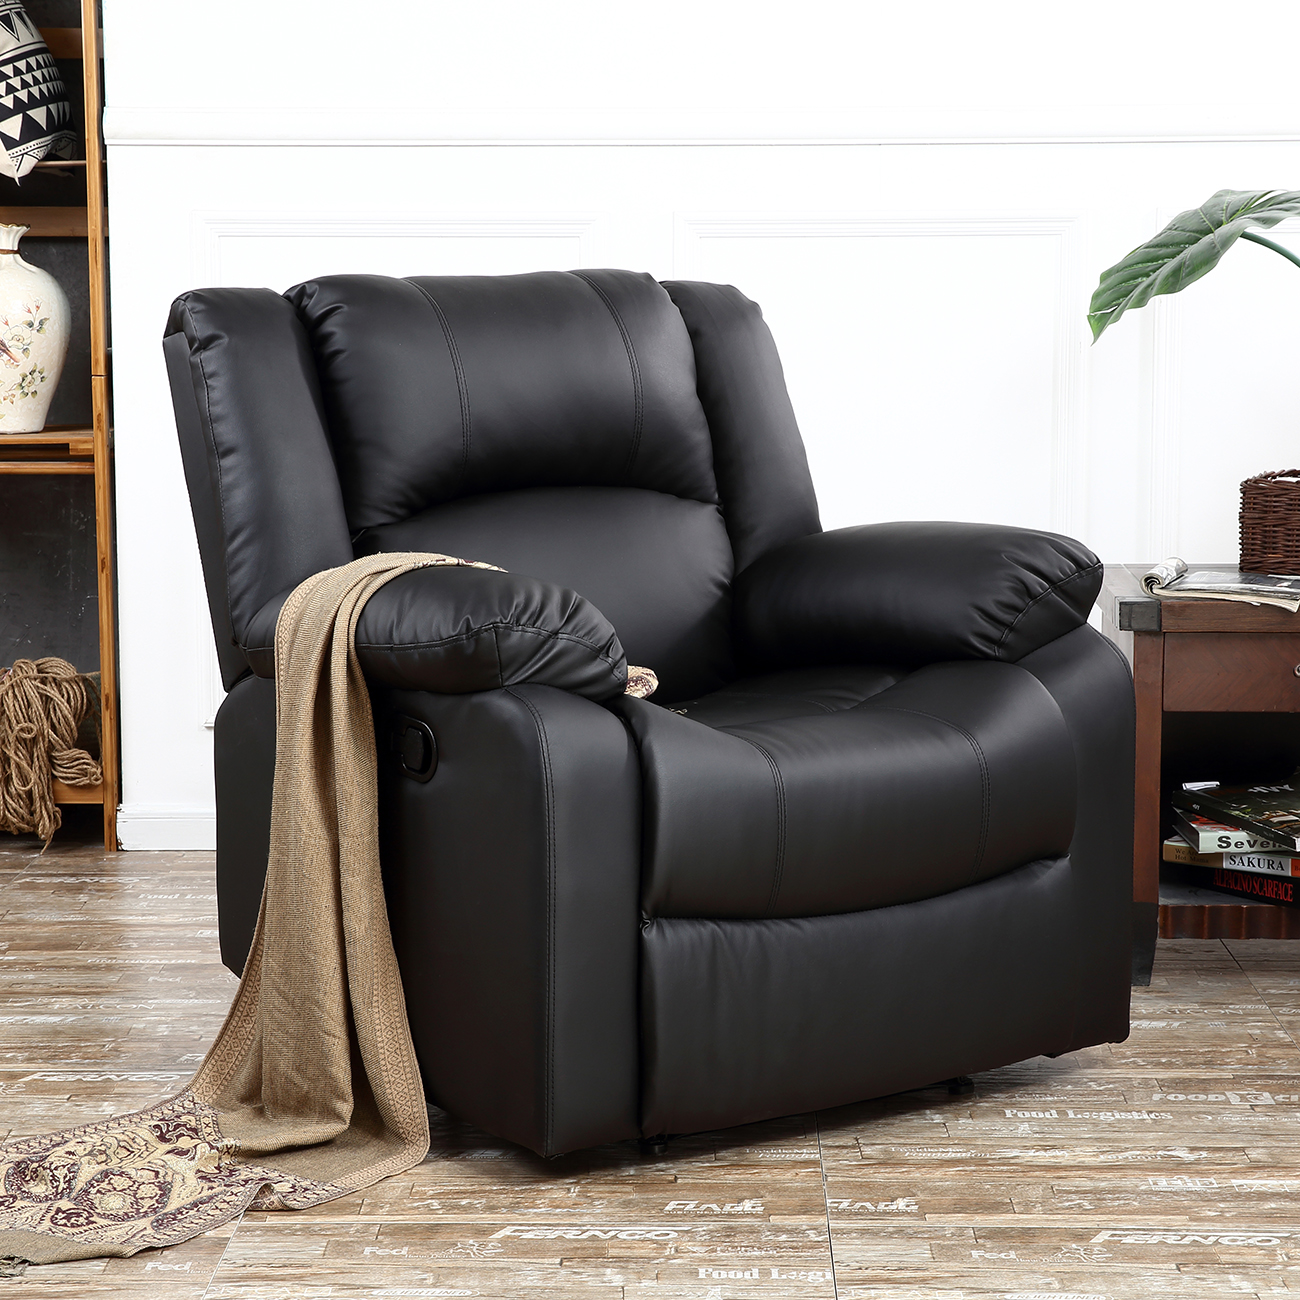 Recliner Chairs For Living Room Dark Brown  Black Leather